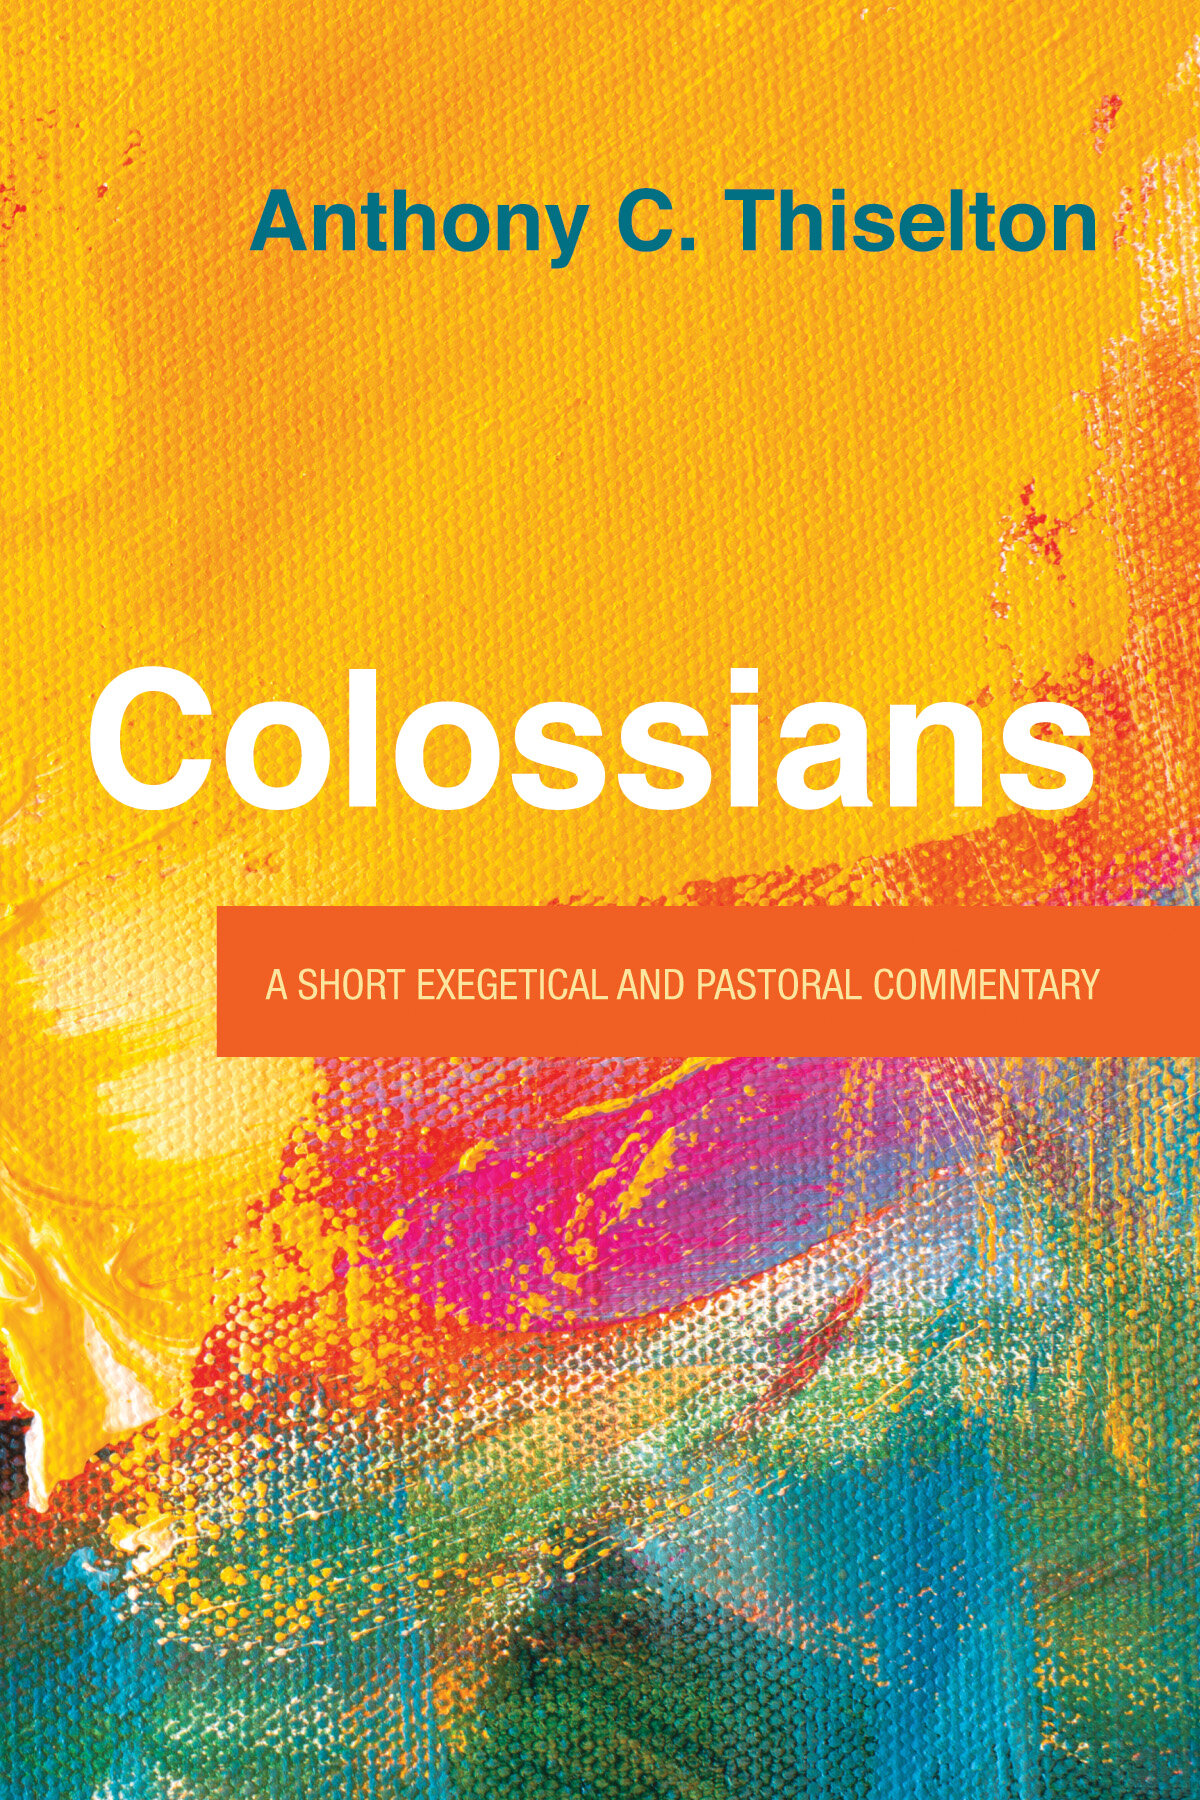 Colossians: A Short Exegetical and Pastoral Commentary